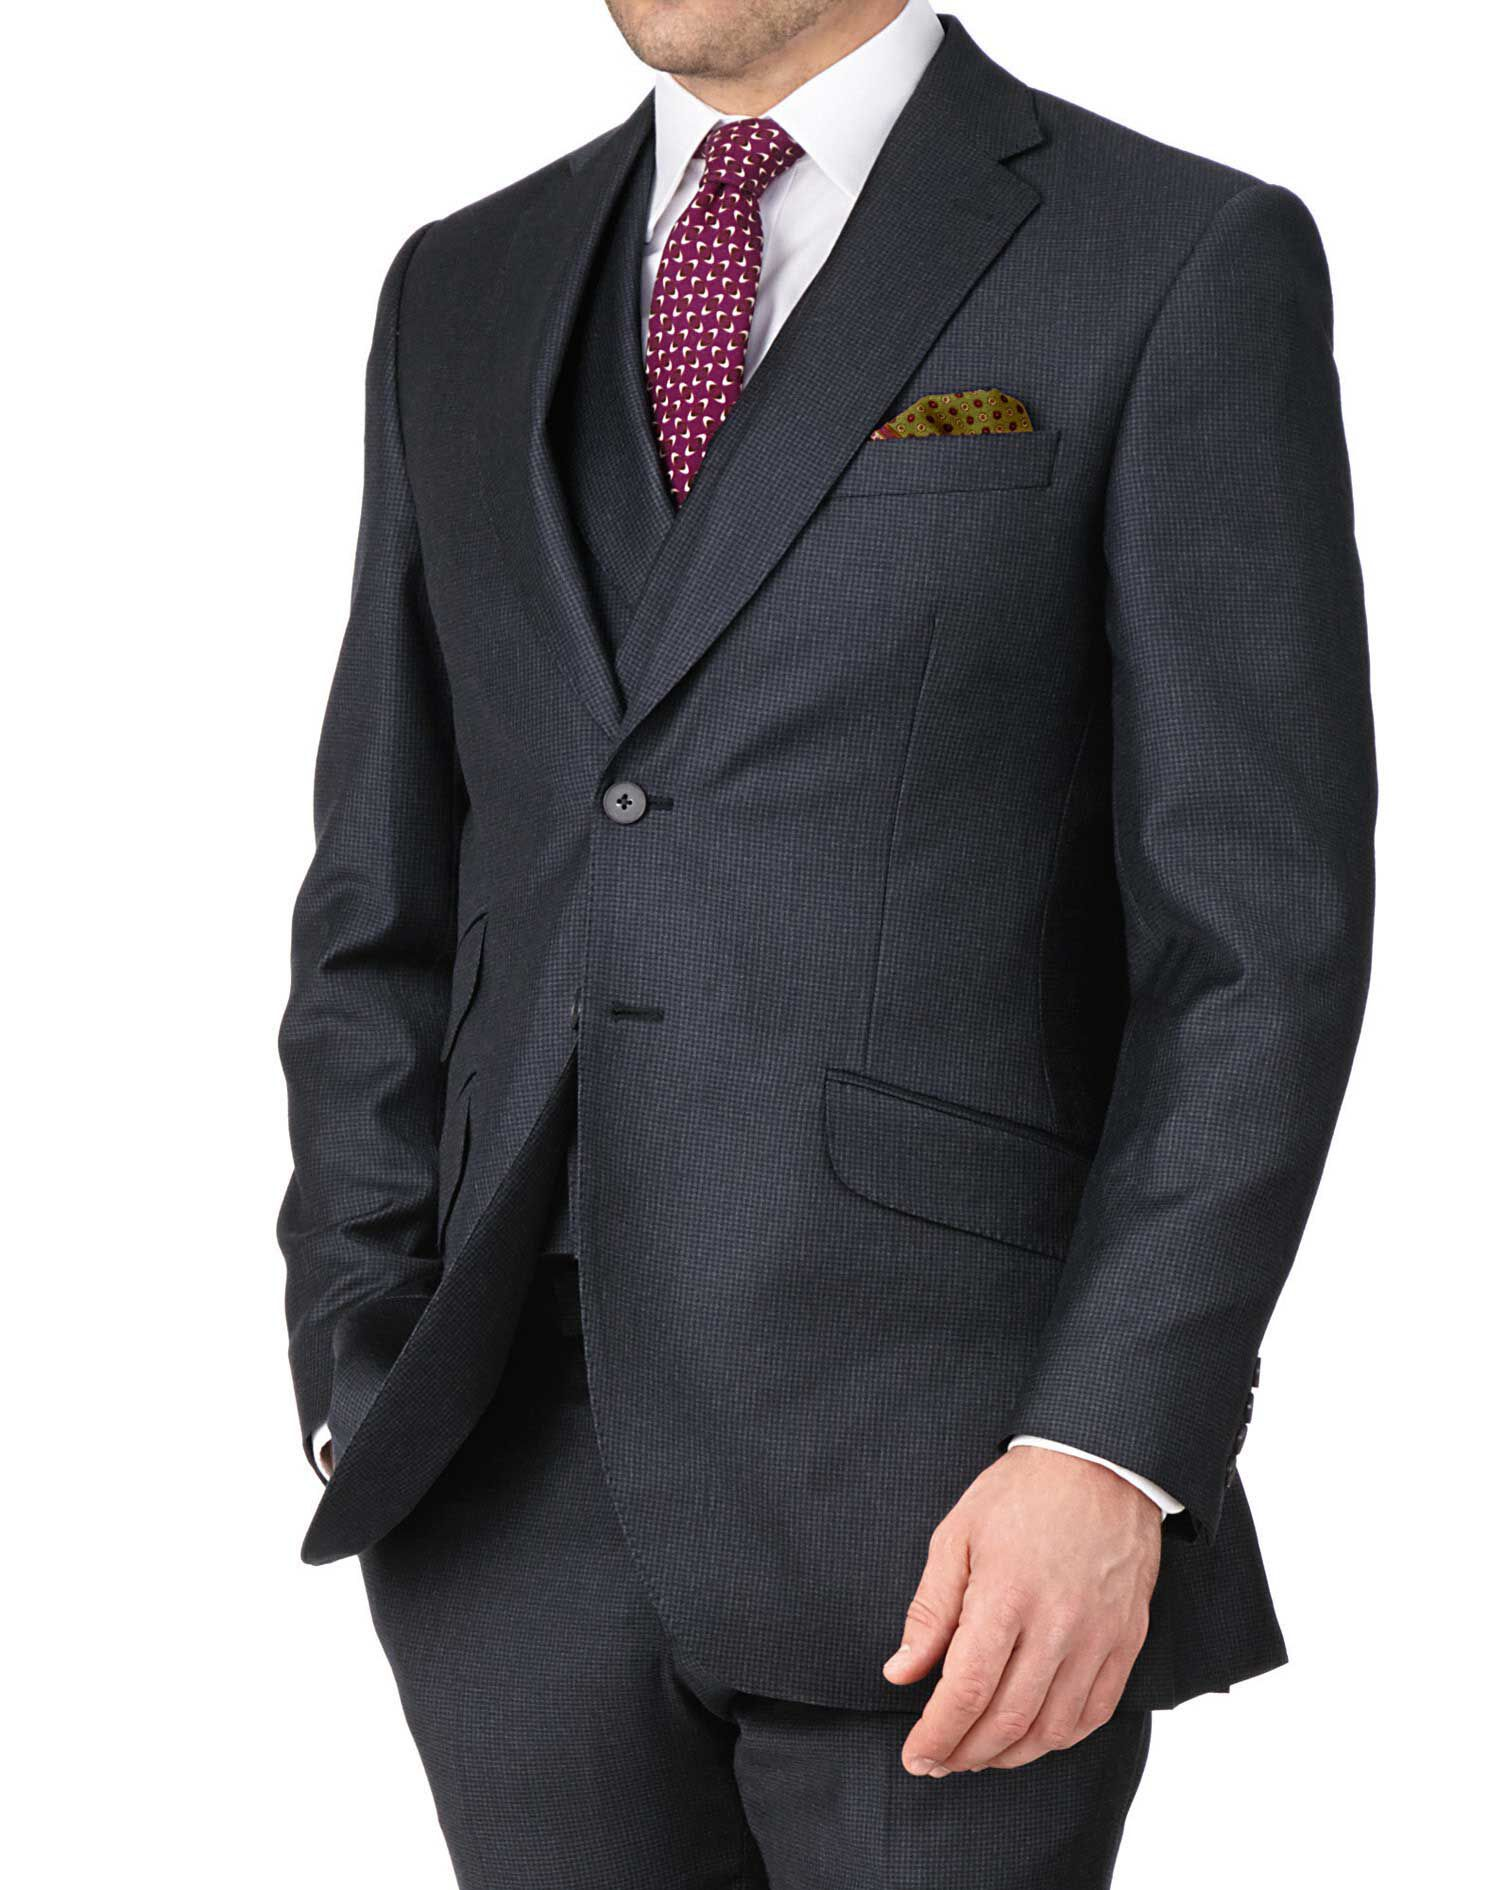 Blue Slim Fit British Puppytooth Luxury Suit Wool Jacket Size 38 by Charles Tyrwhitt